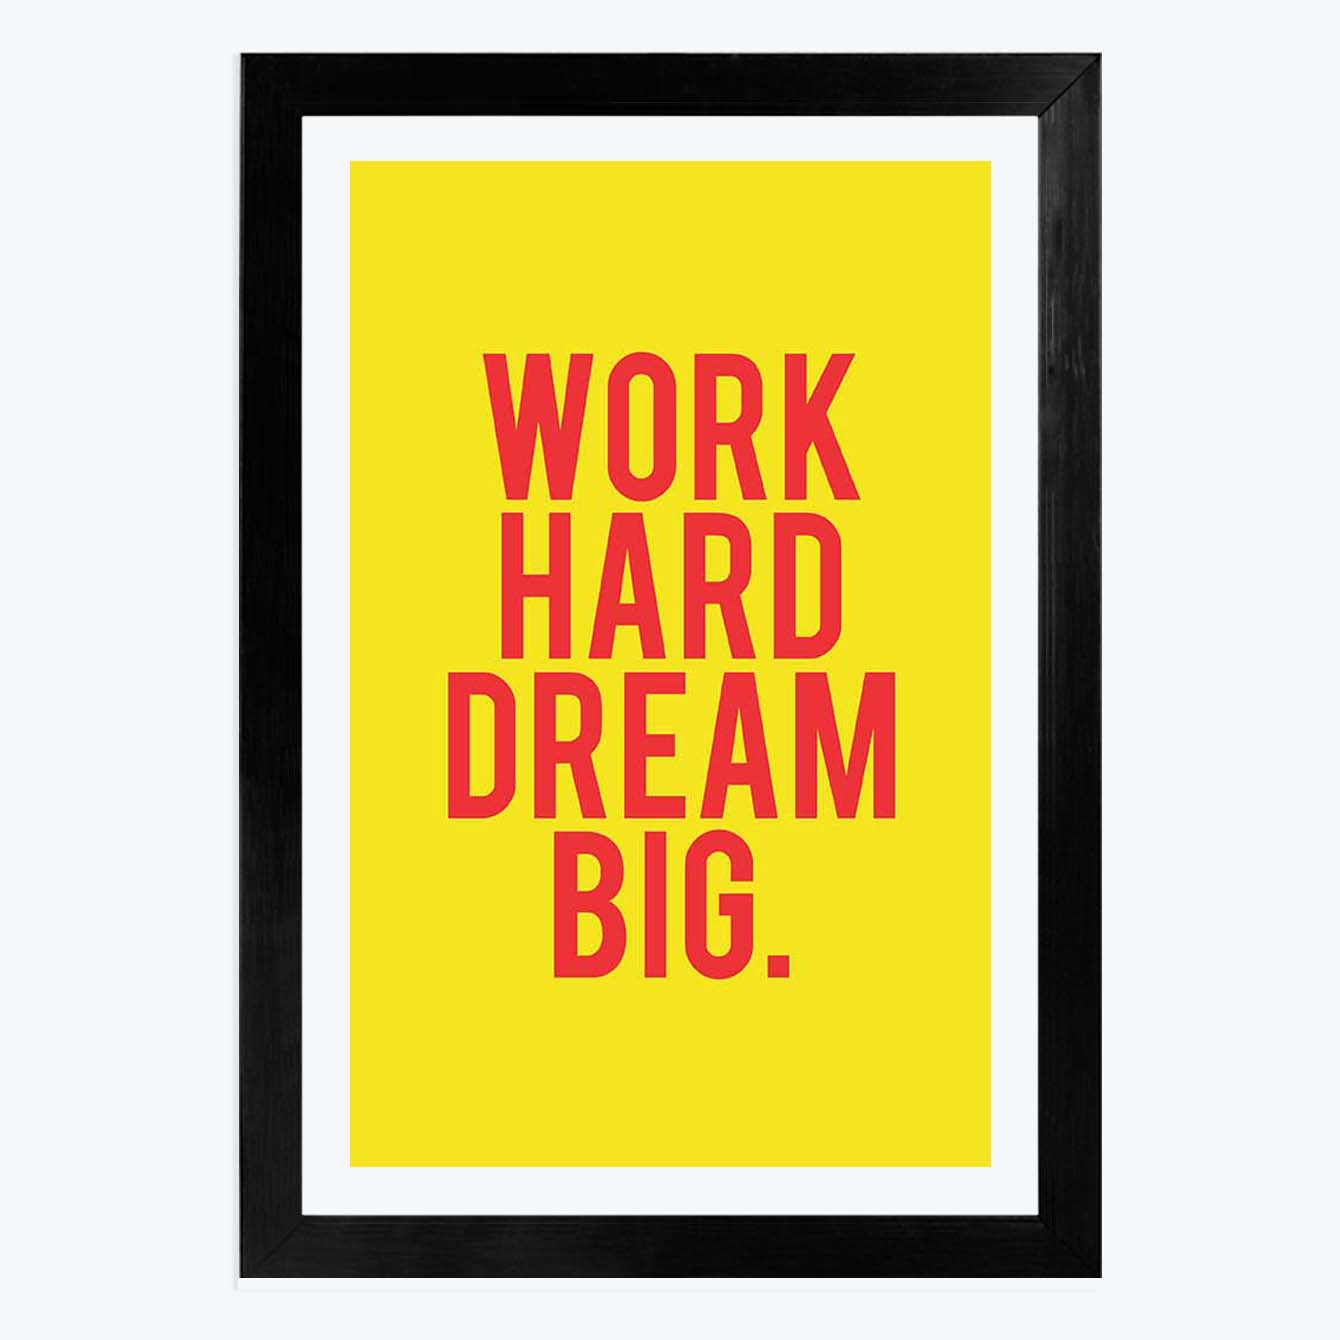 Hard Work Dream Big Framed Poster